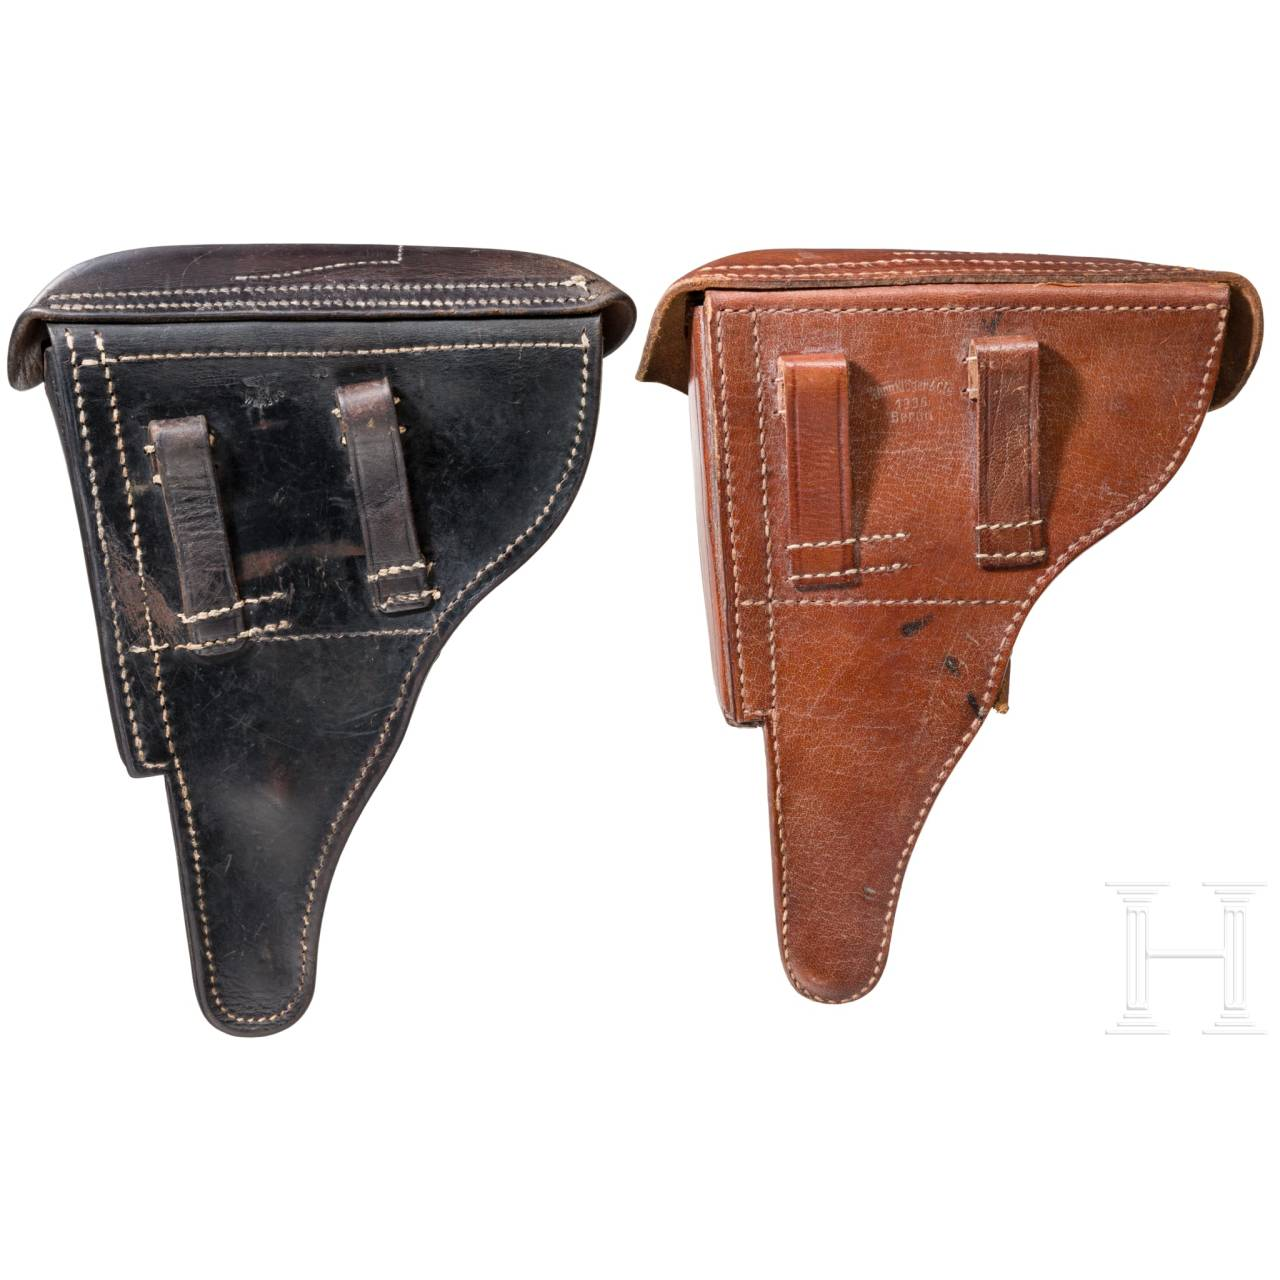 Wehrmacht holster for P 08 and replica